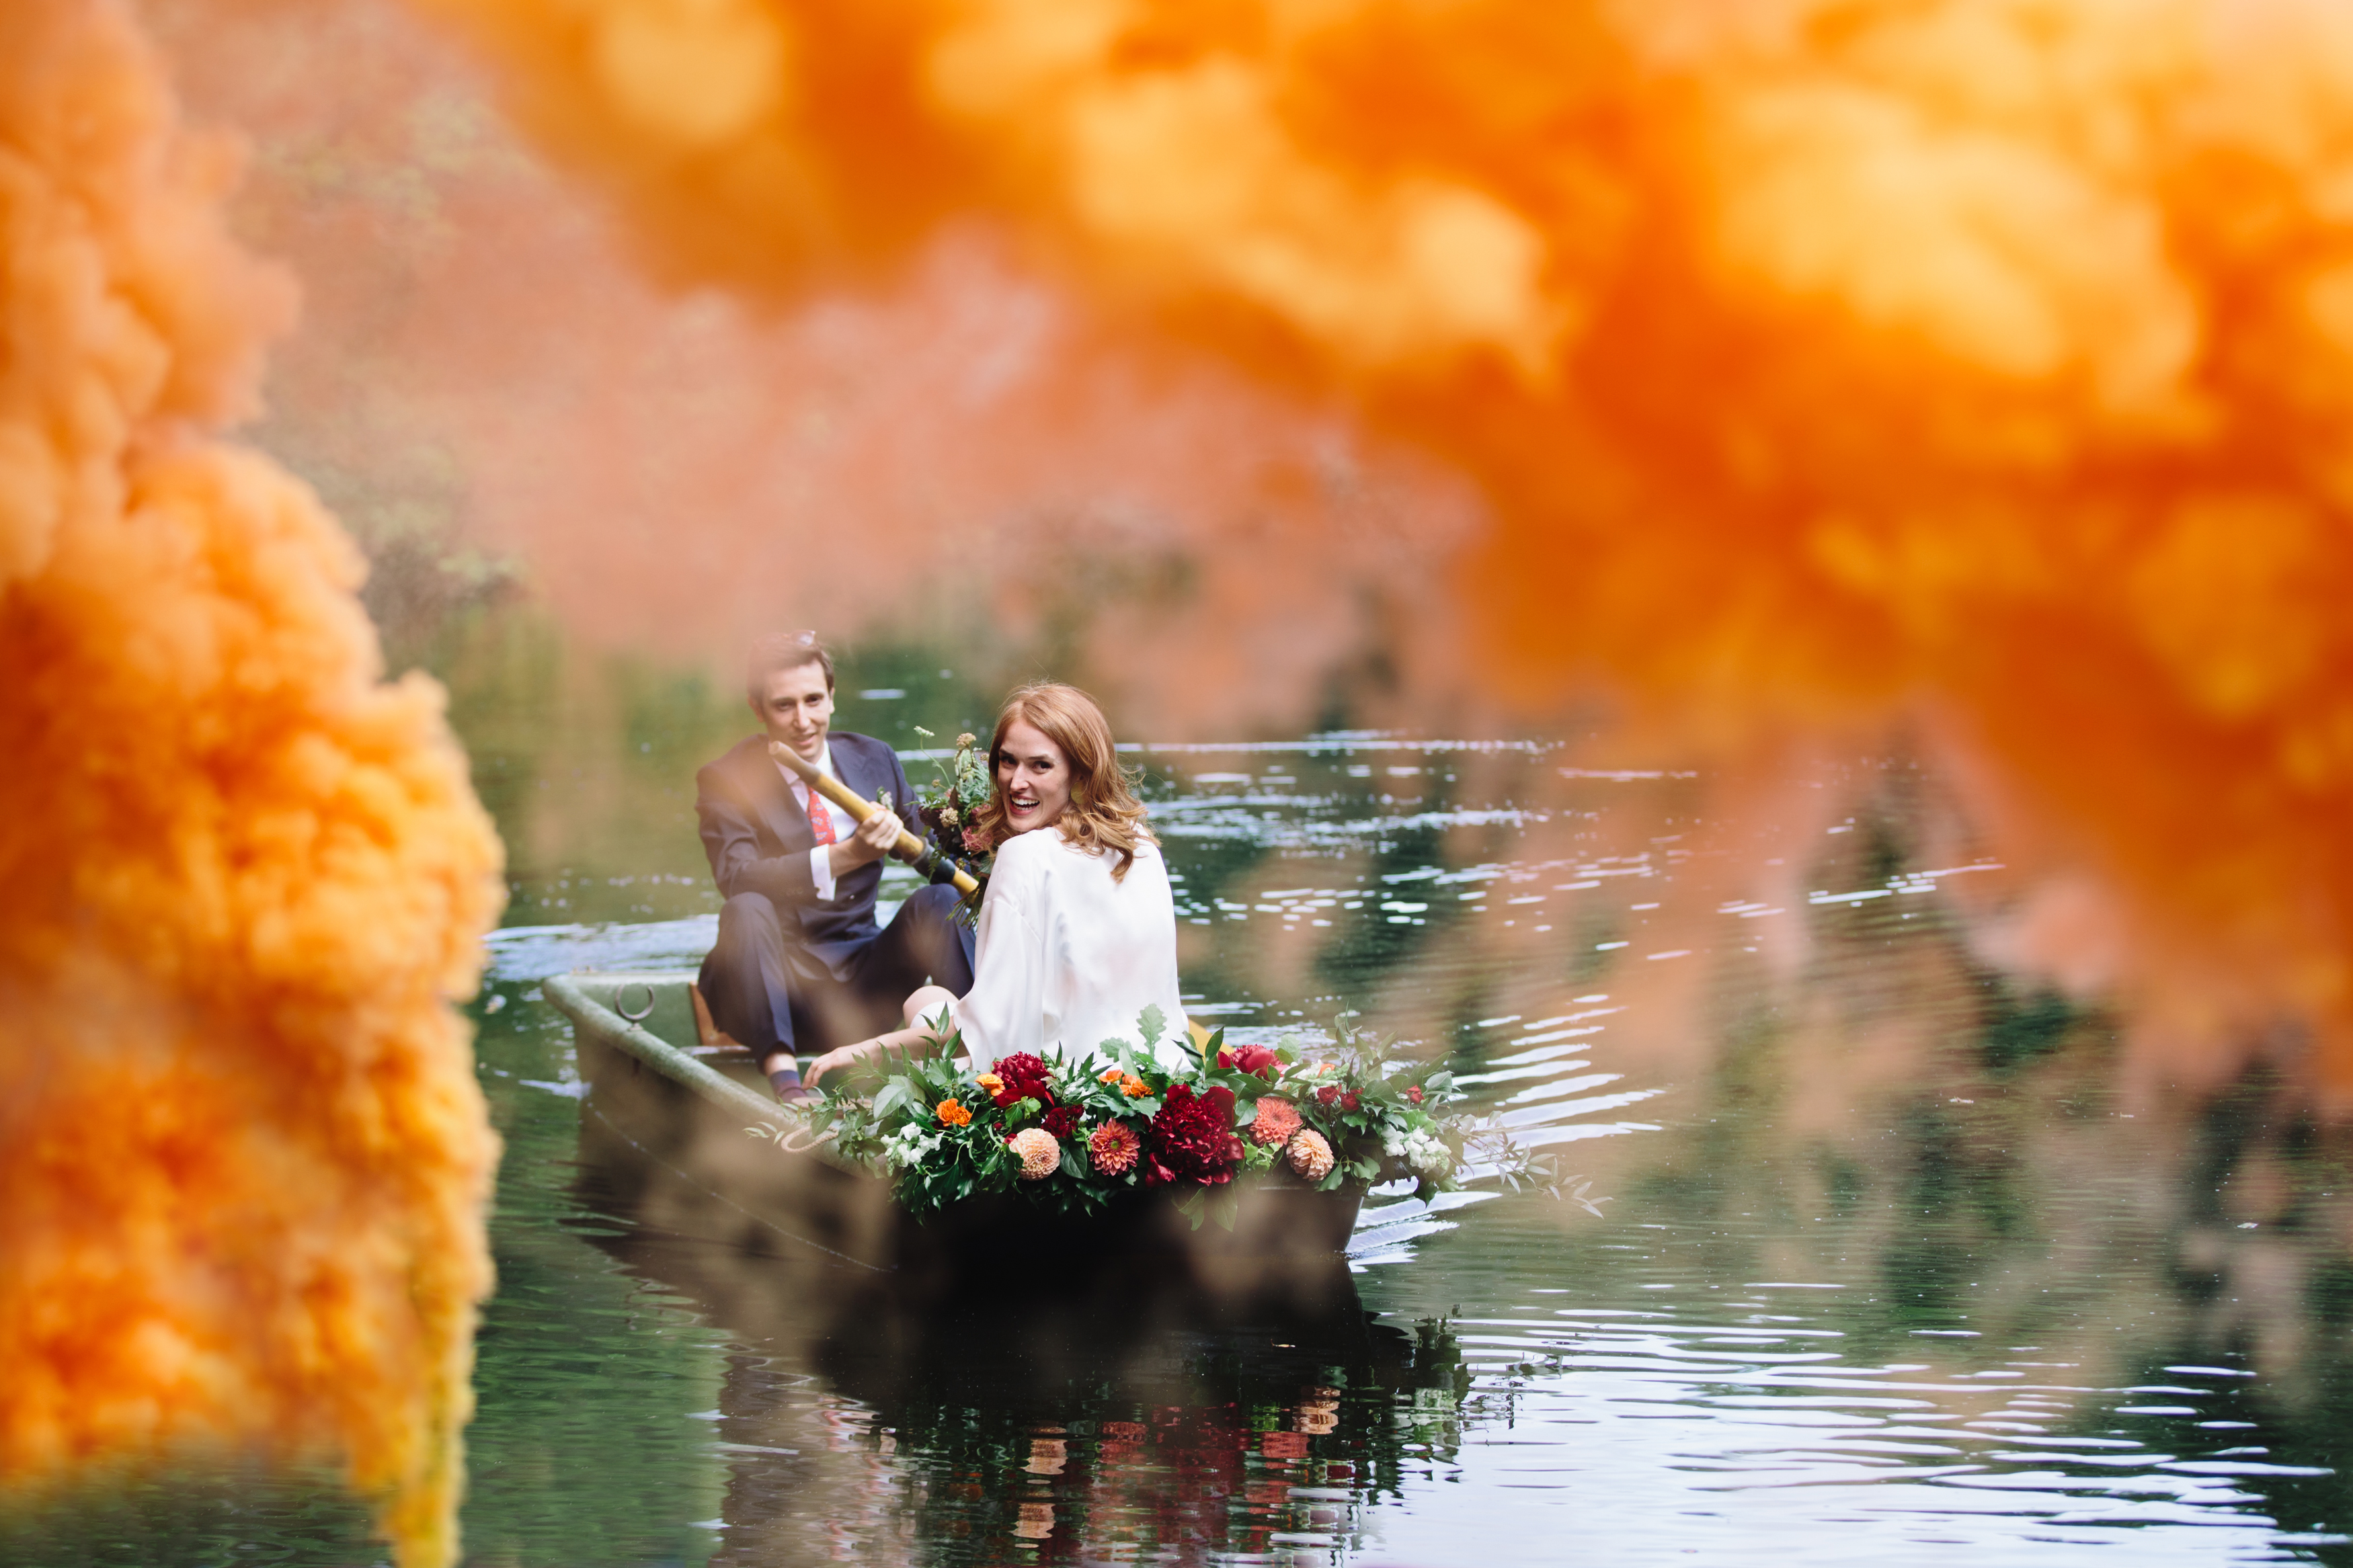 Hermione McCosh Photography - arriving on a boat at your wedding in the midst of smoke bombs!